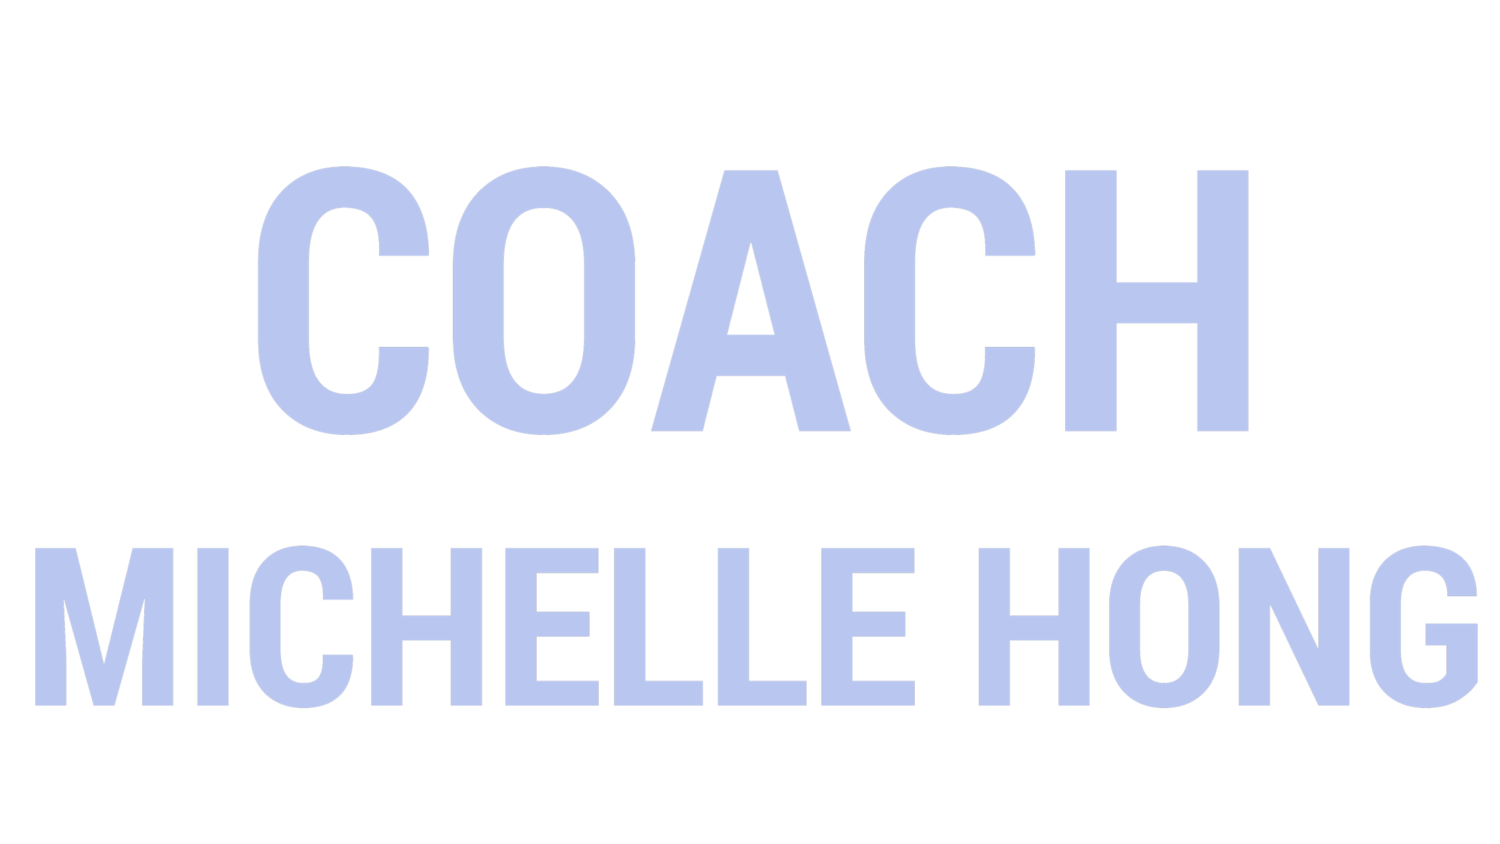 Coach Michelle Hong